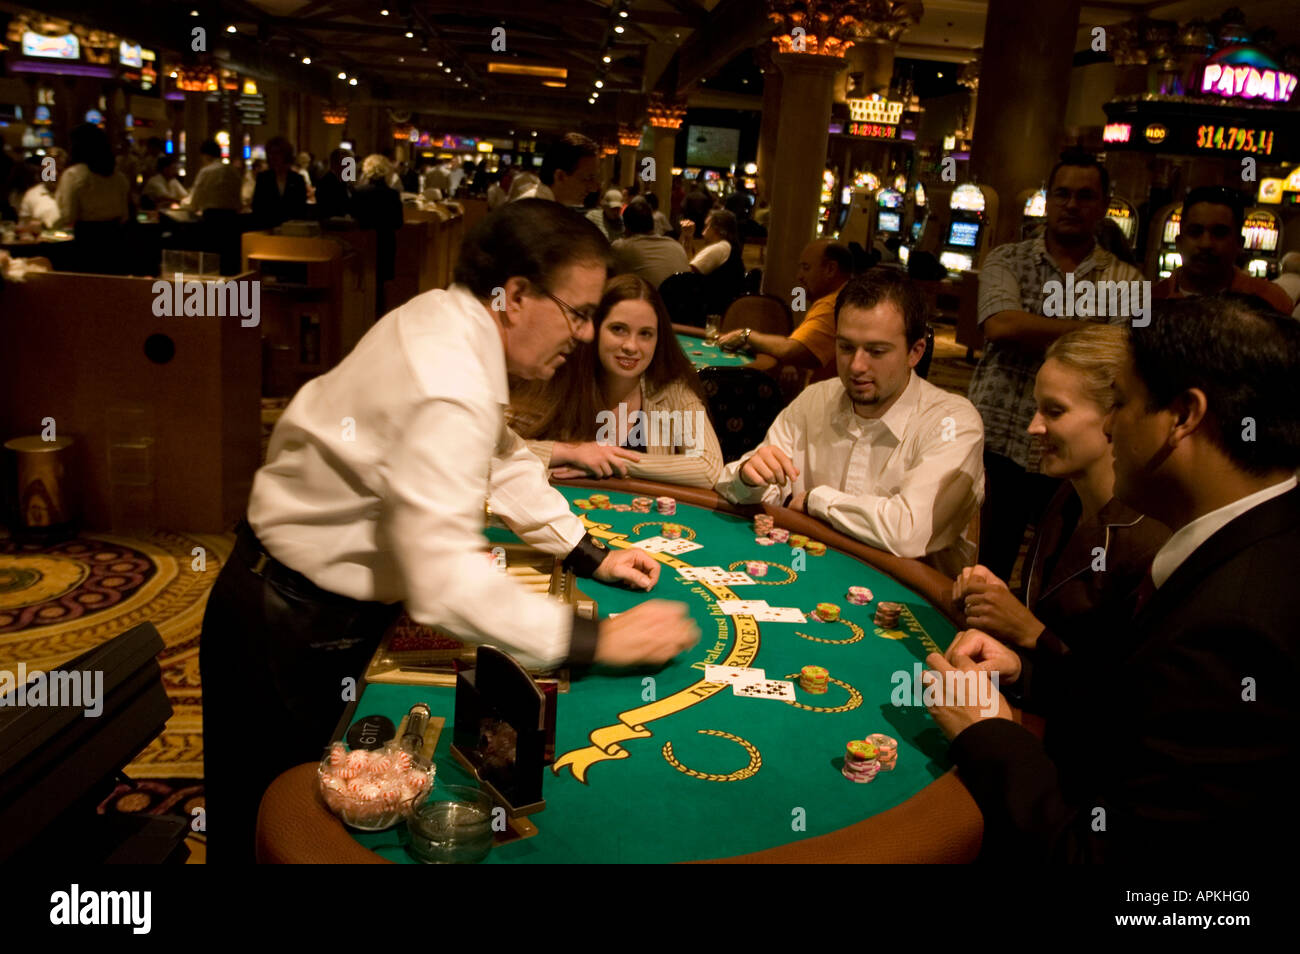 Approved table games for casinos in nevada district of columbia legalized gambling